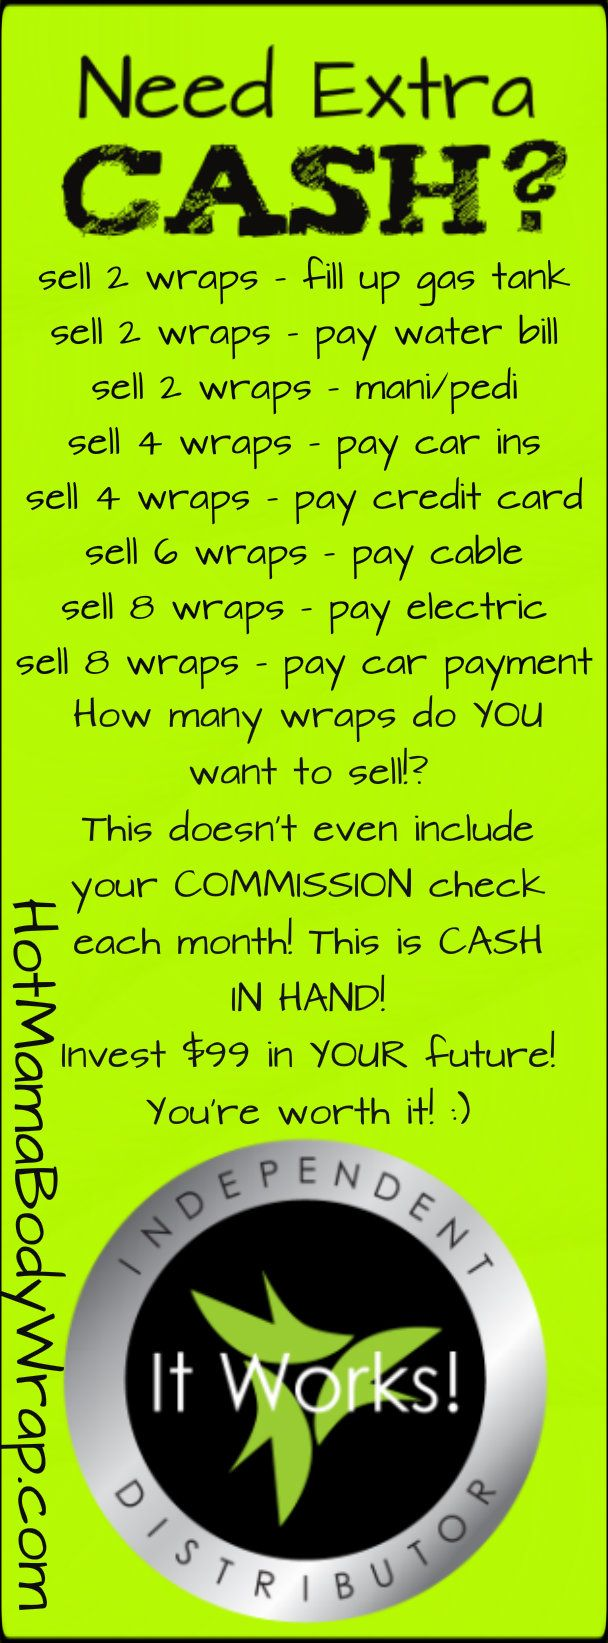 Did you know you can SELL that Crazy Wrap Thing and make extra money? Maybe even make a CAREER out of it! Want to stay home with your kids? Quit working for someone else? Work for yourself? When you join the WRAPPERS WITH SWAGGER team, you get discounted product, the rights to sell, and a TEAM that wants you to succeed! Let me help you!  Join the TEAM by clicking the pin or get more info here --  http://hotmamabodywrap.com/become-an-it-works-distributor